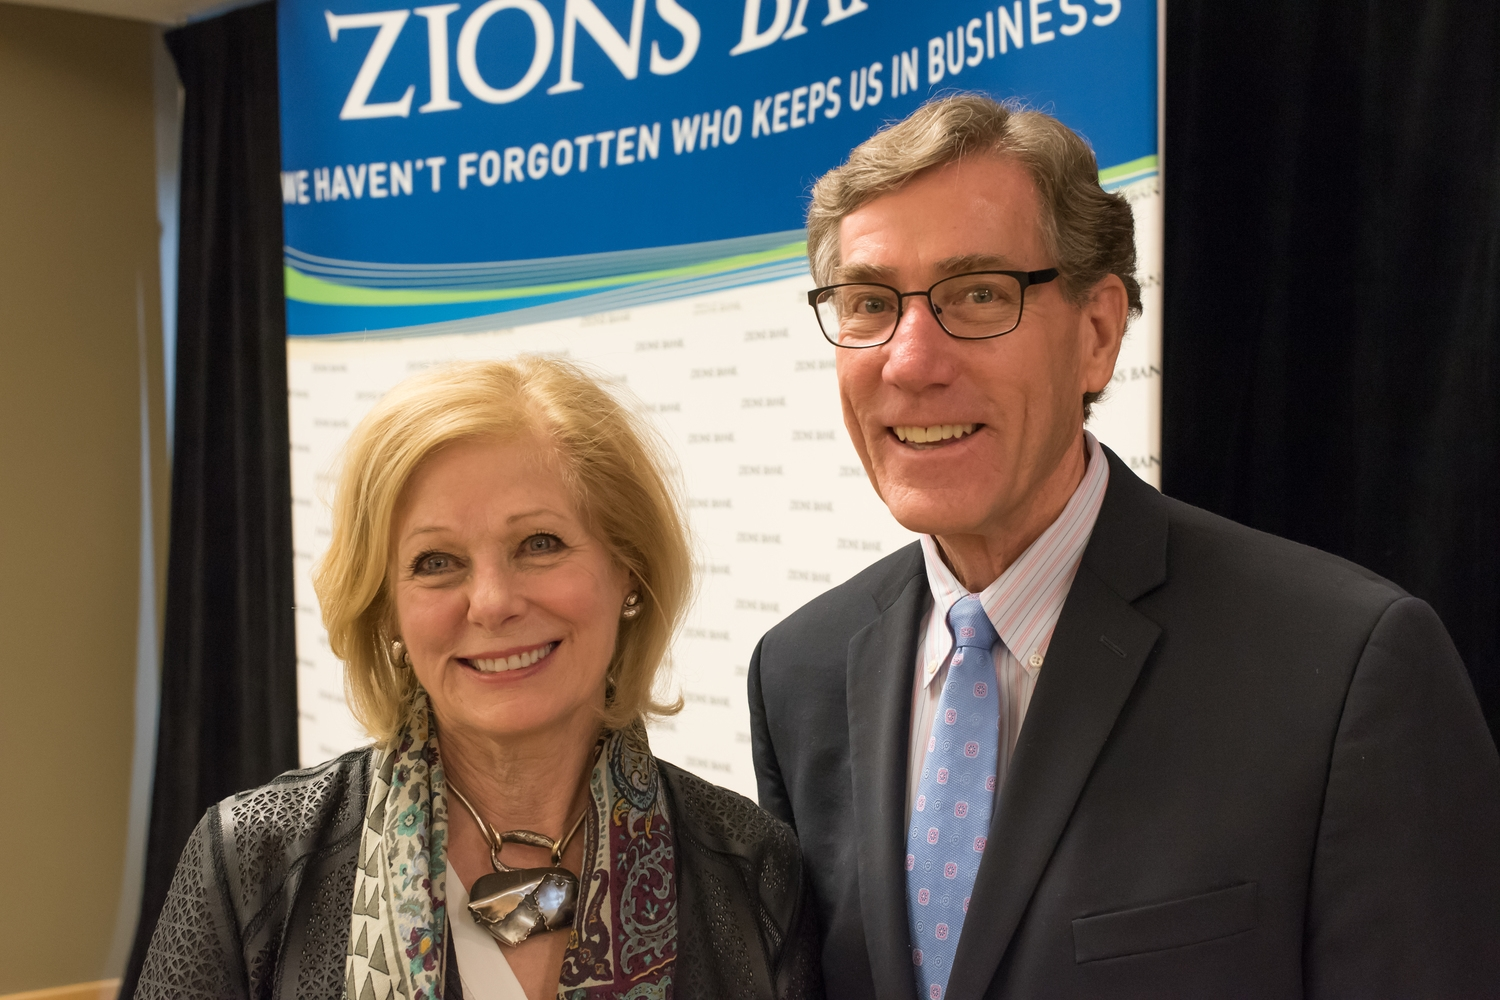 Susan with Scott Anderson, CEO of Zions Bank and major patron of the arts.jpg